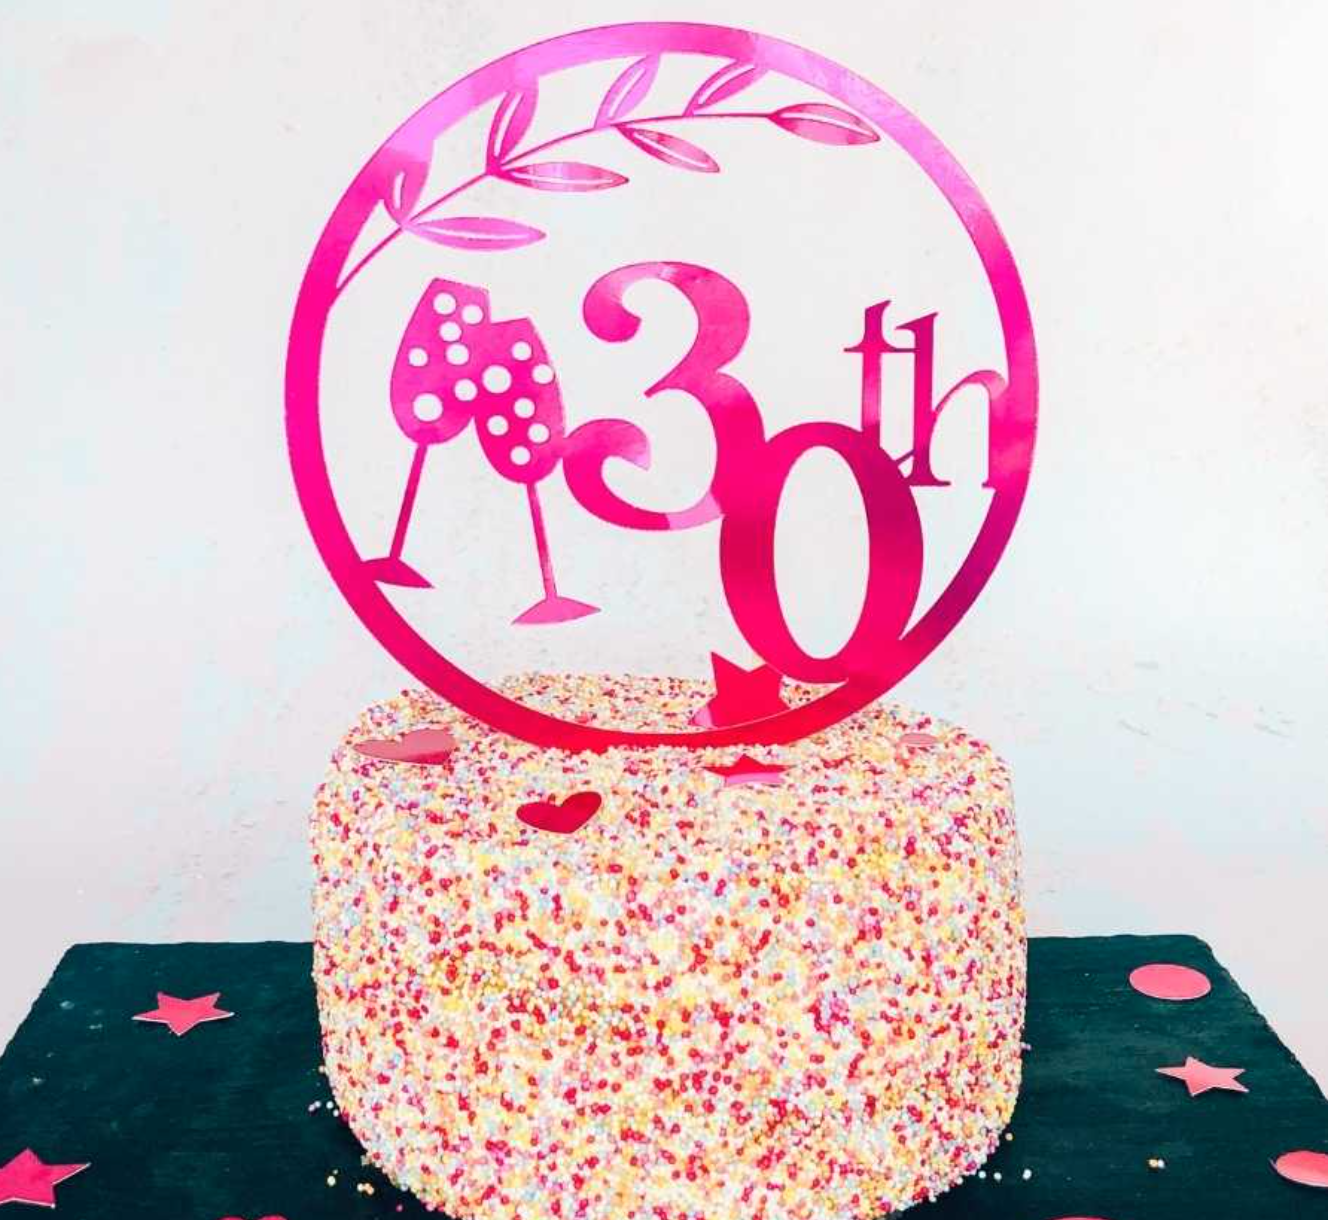 Milestone birthday cake topper